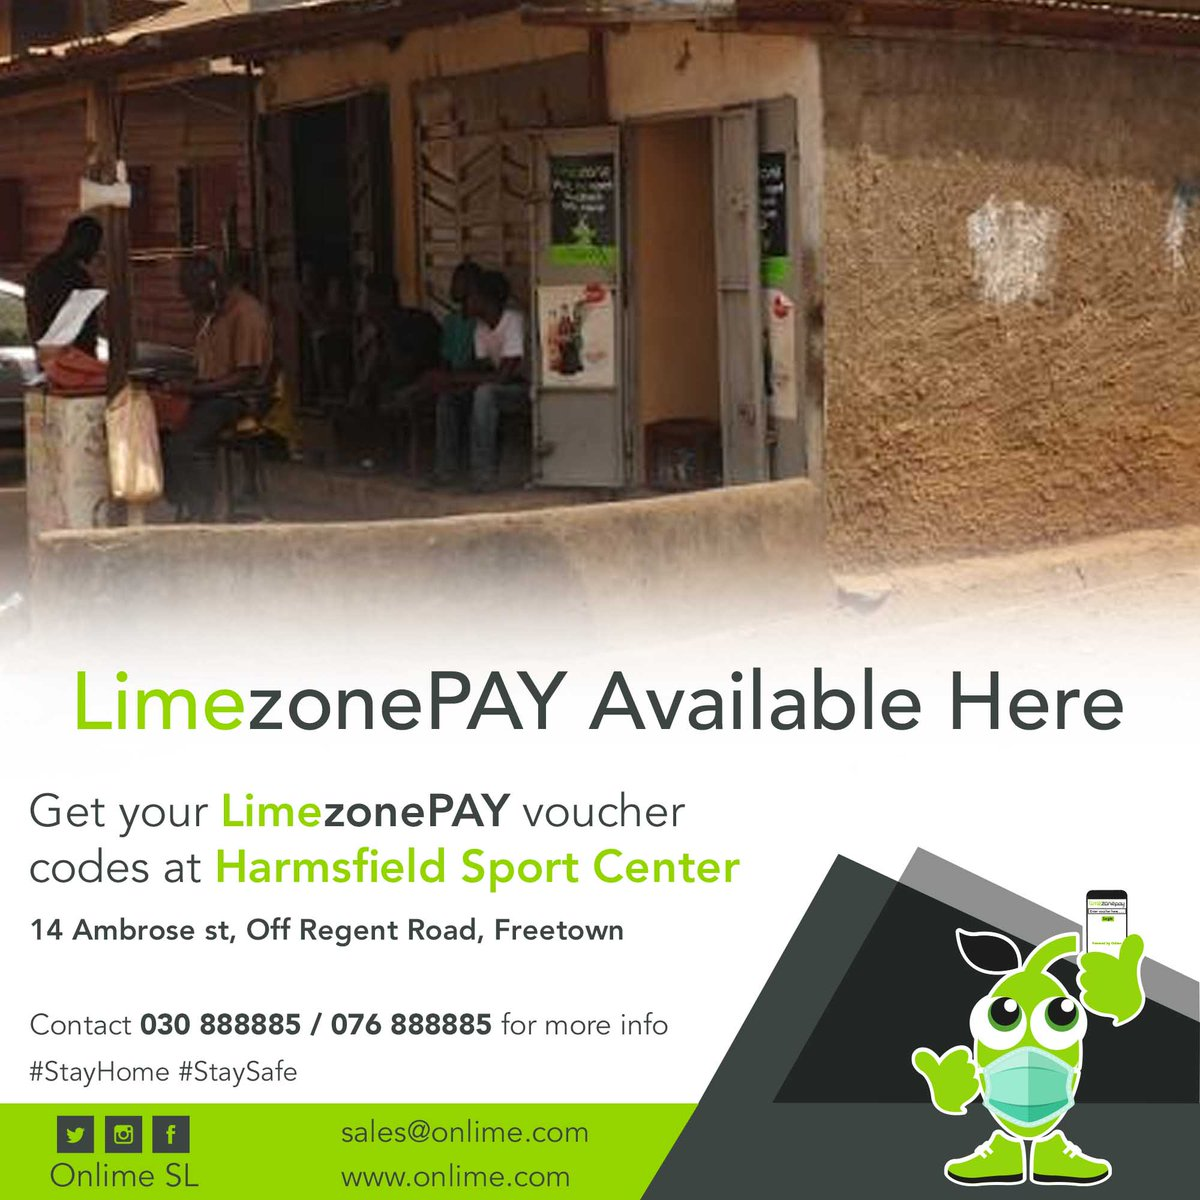 Get your LimezonePAY Voucher codes from Harmsfield Sport Center, 14 Ambrose Street Of Regent Road Freetown. contact +23230888885/+23276888885 for more info. #StayConnected #StaySafe #LimezonePAY https://t.co/zGS9s8otPx